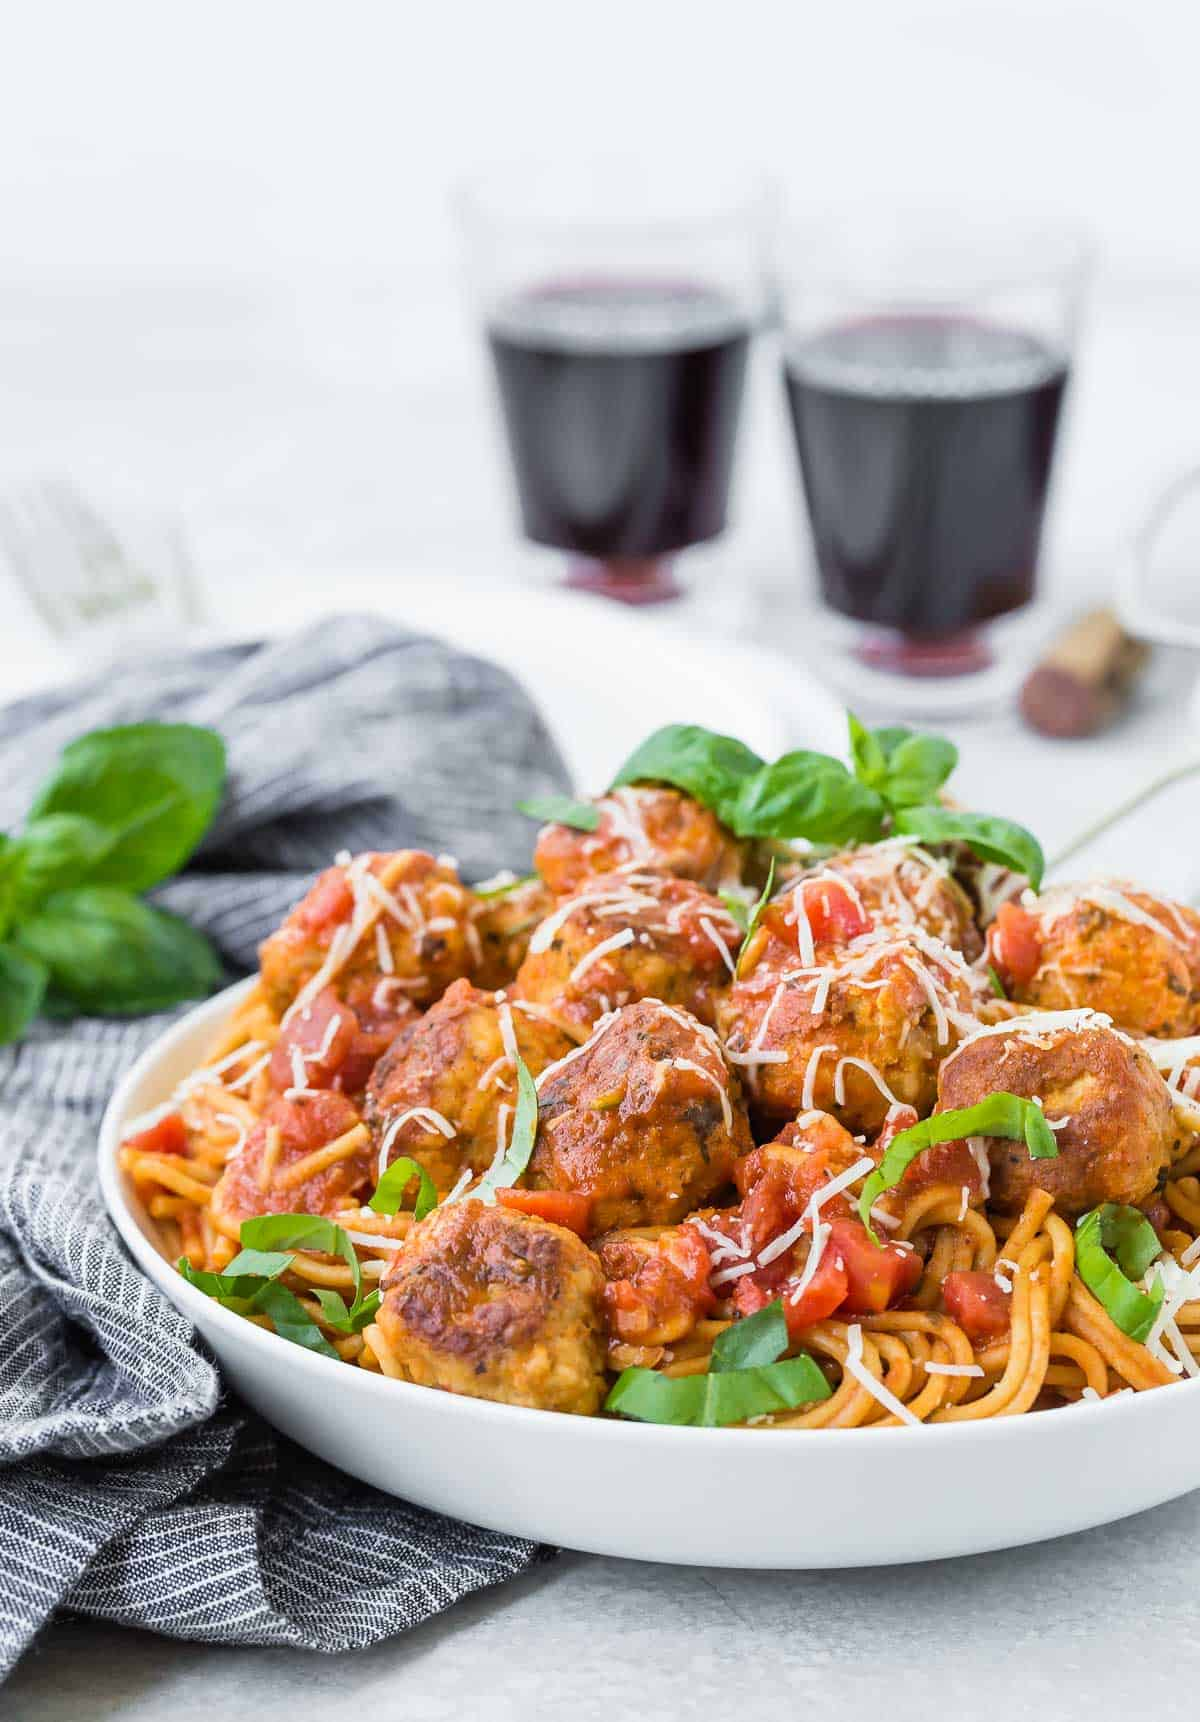 Spaghetti with meatballs, piled high in a white bowl.